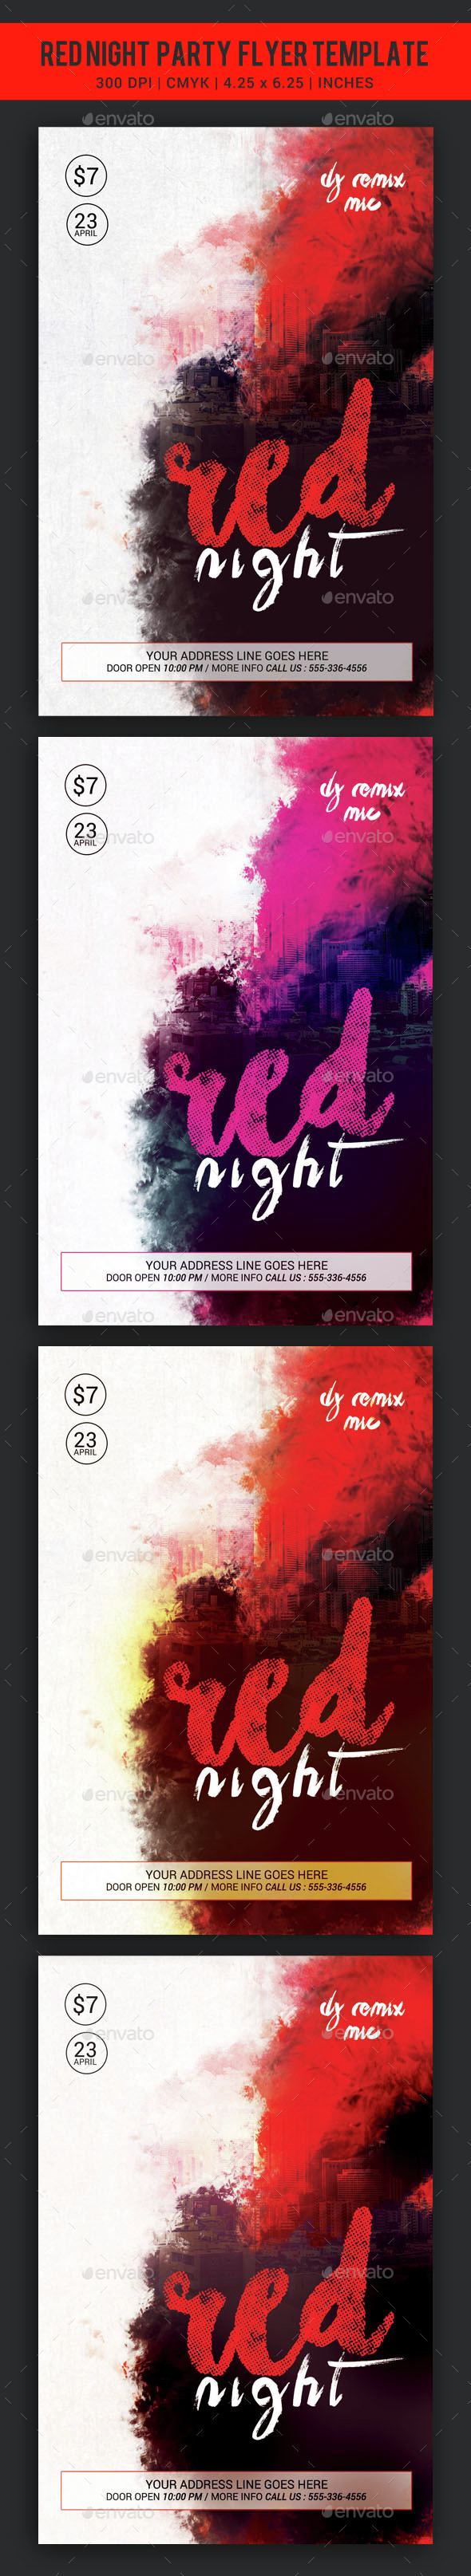 Red Night Flyer - Clubs & Parties Events